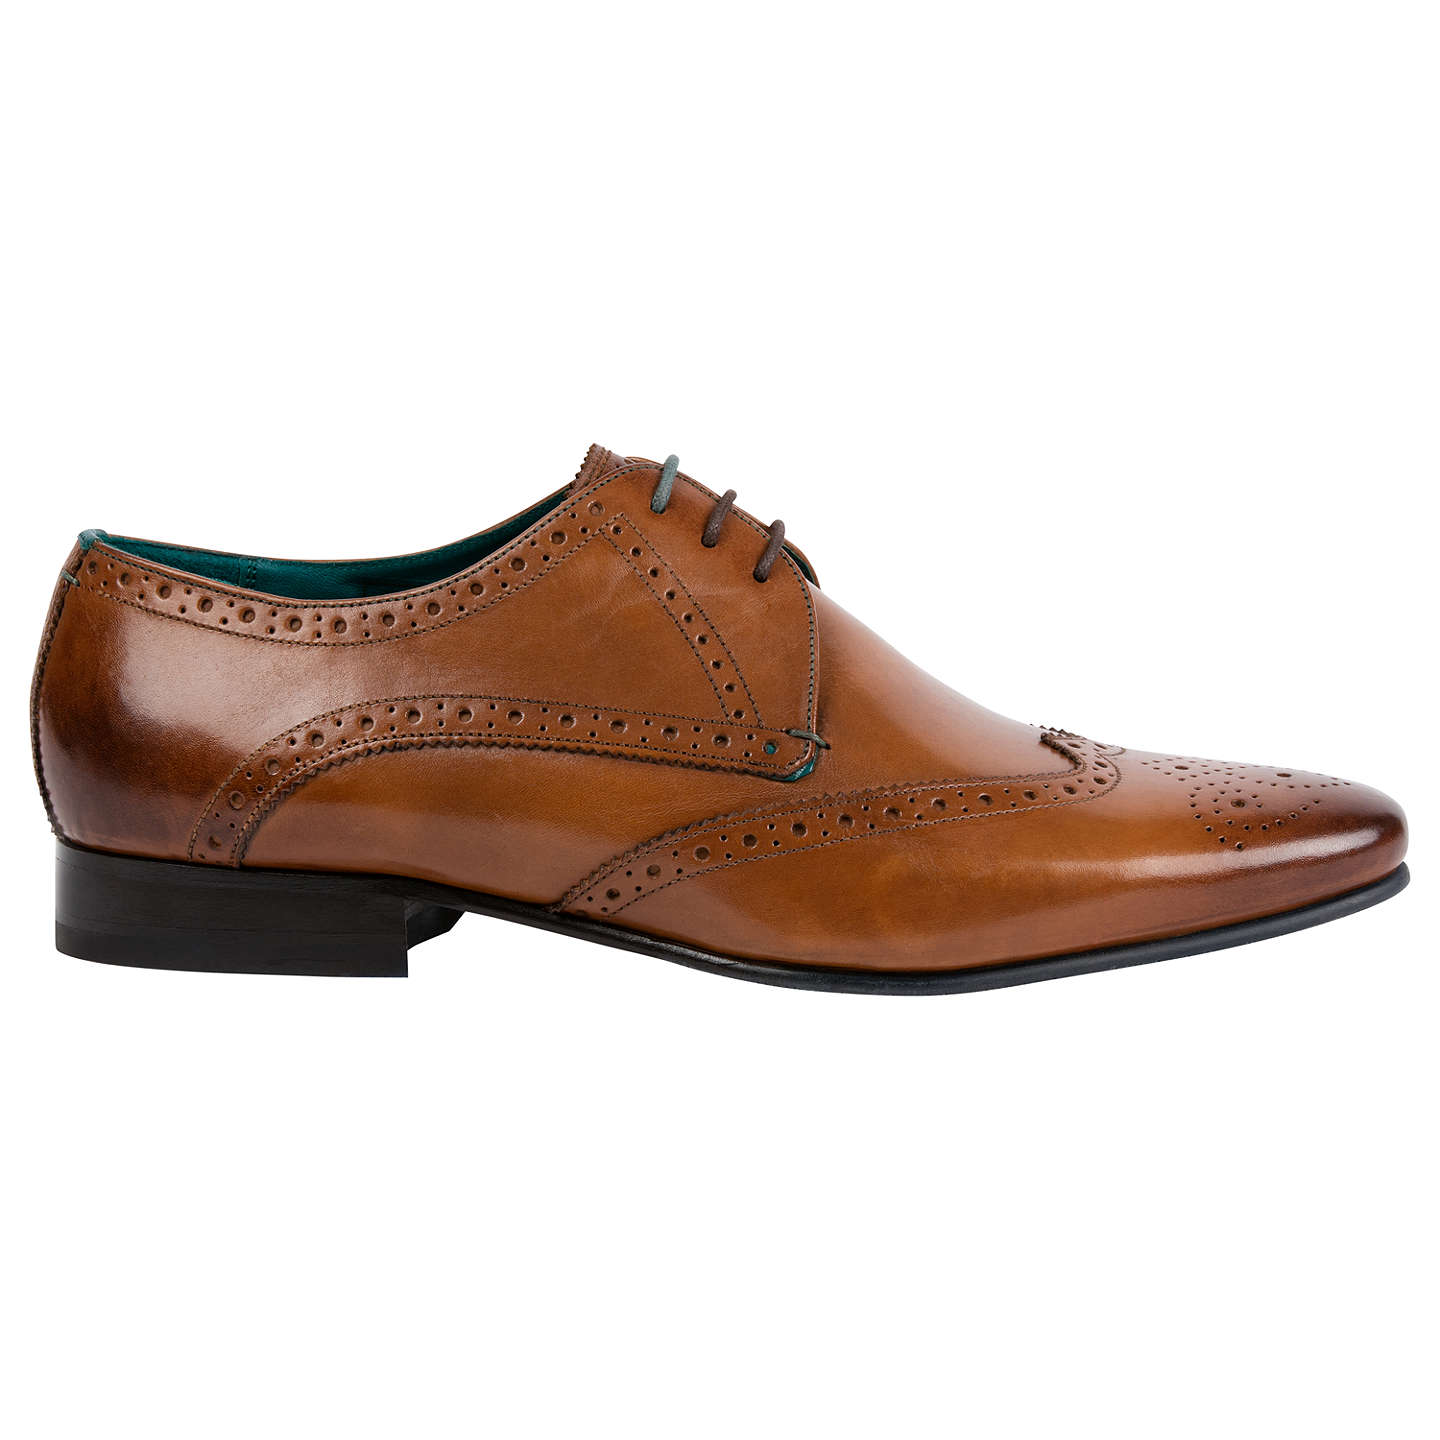 Ted Baker Hosei brogue shoes in leather